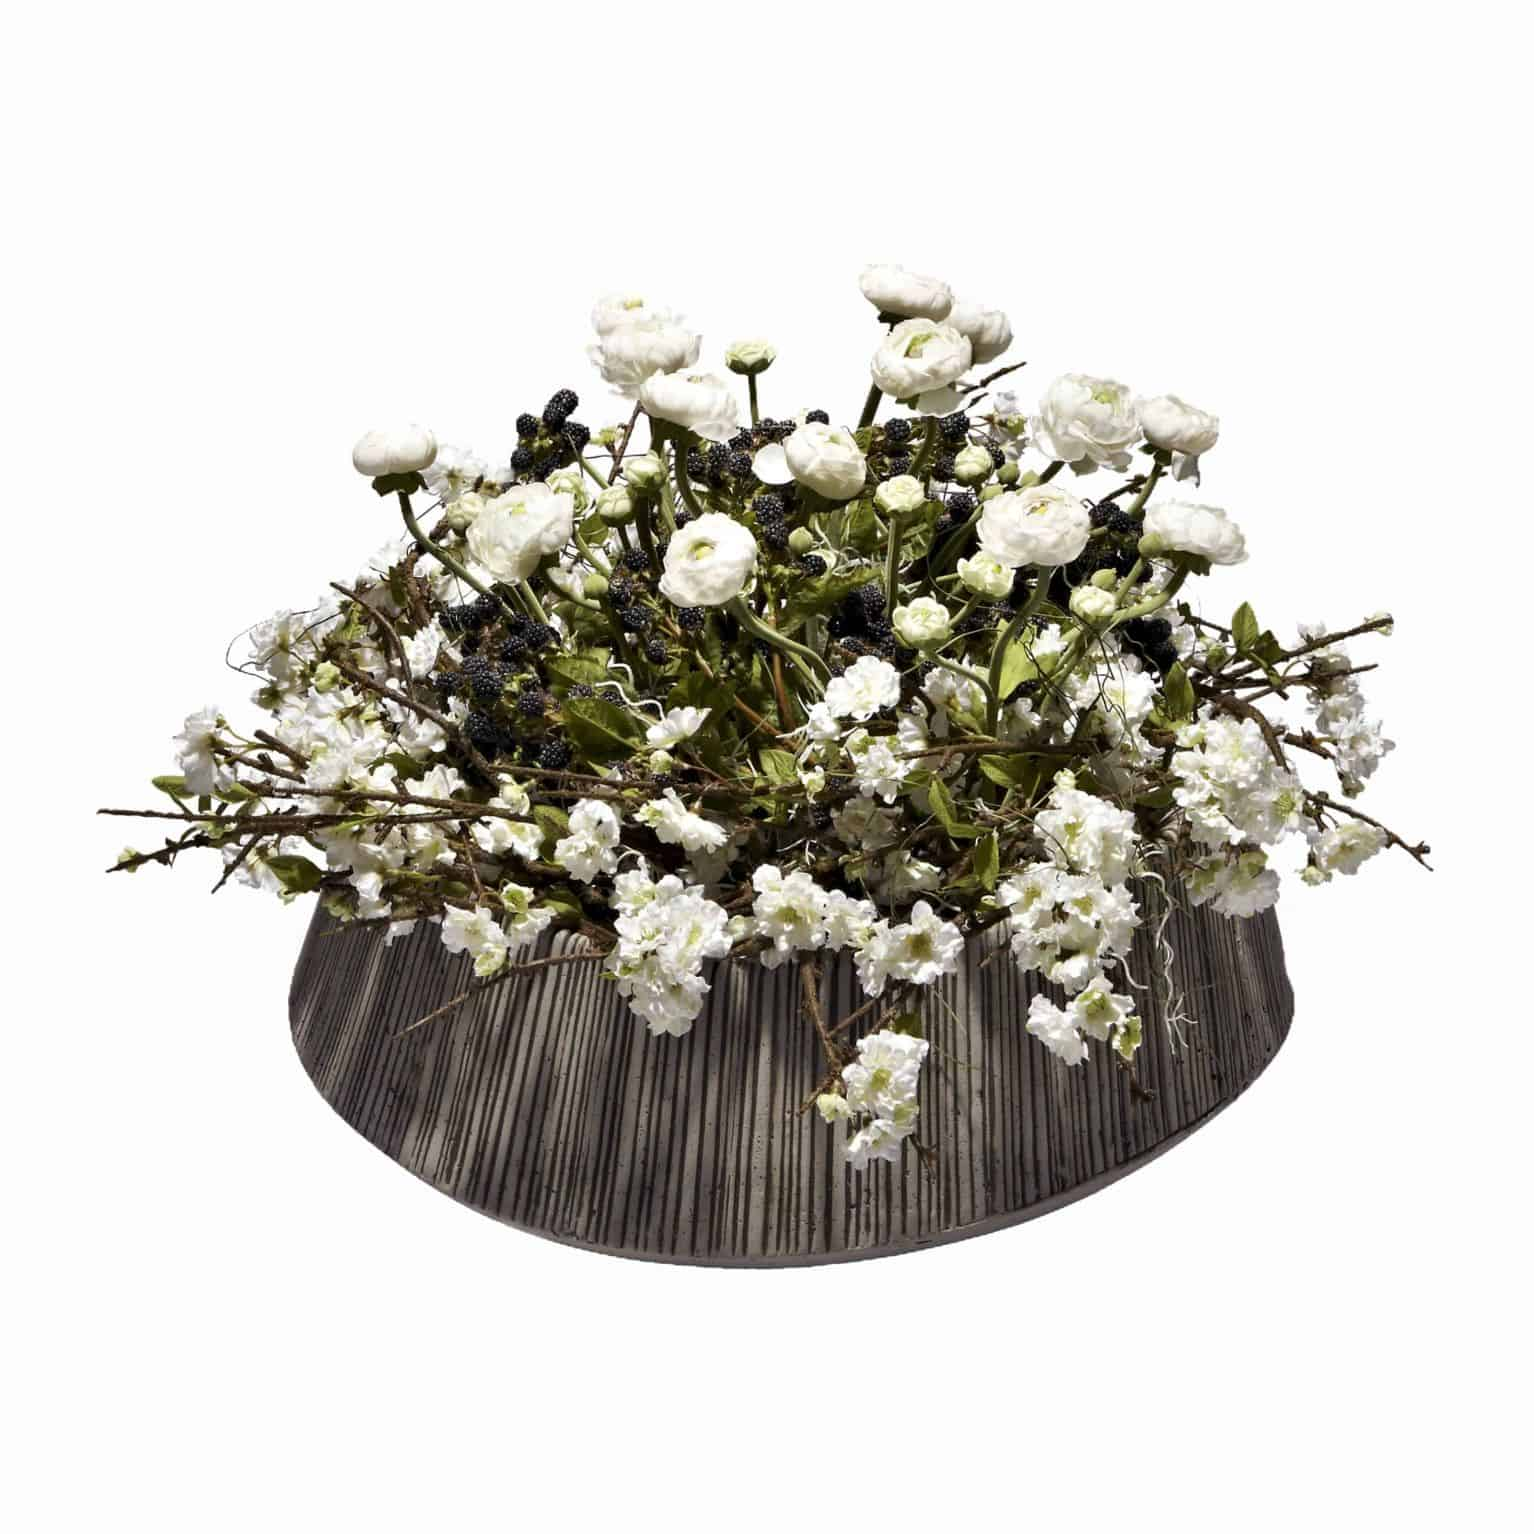 Shop for our countryside arrangement with delicate white silk blossom flowers and flawless ranunculus artificial flowers with blackberries